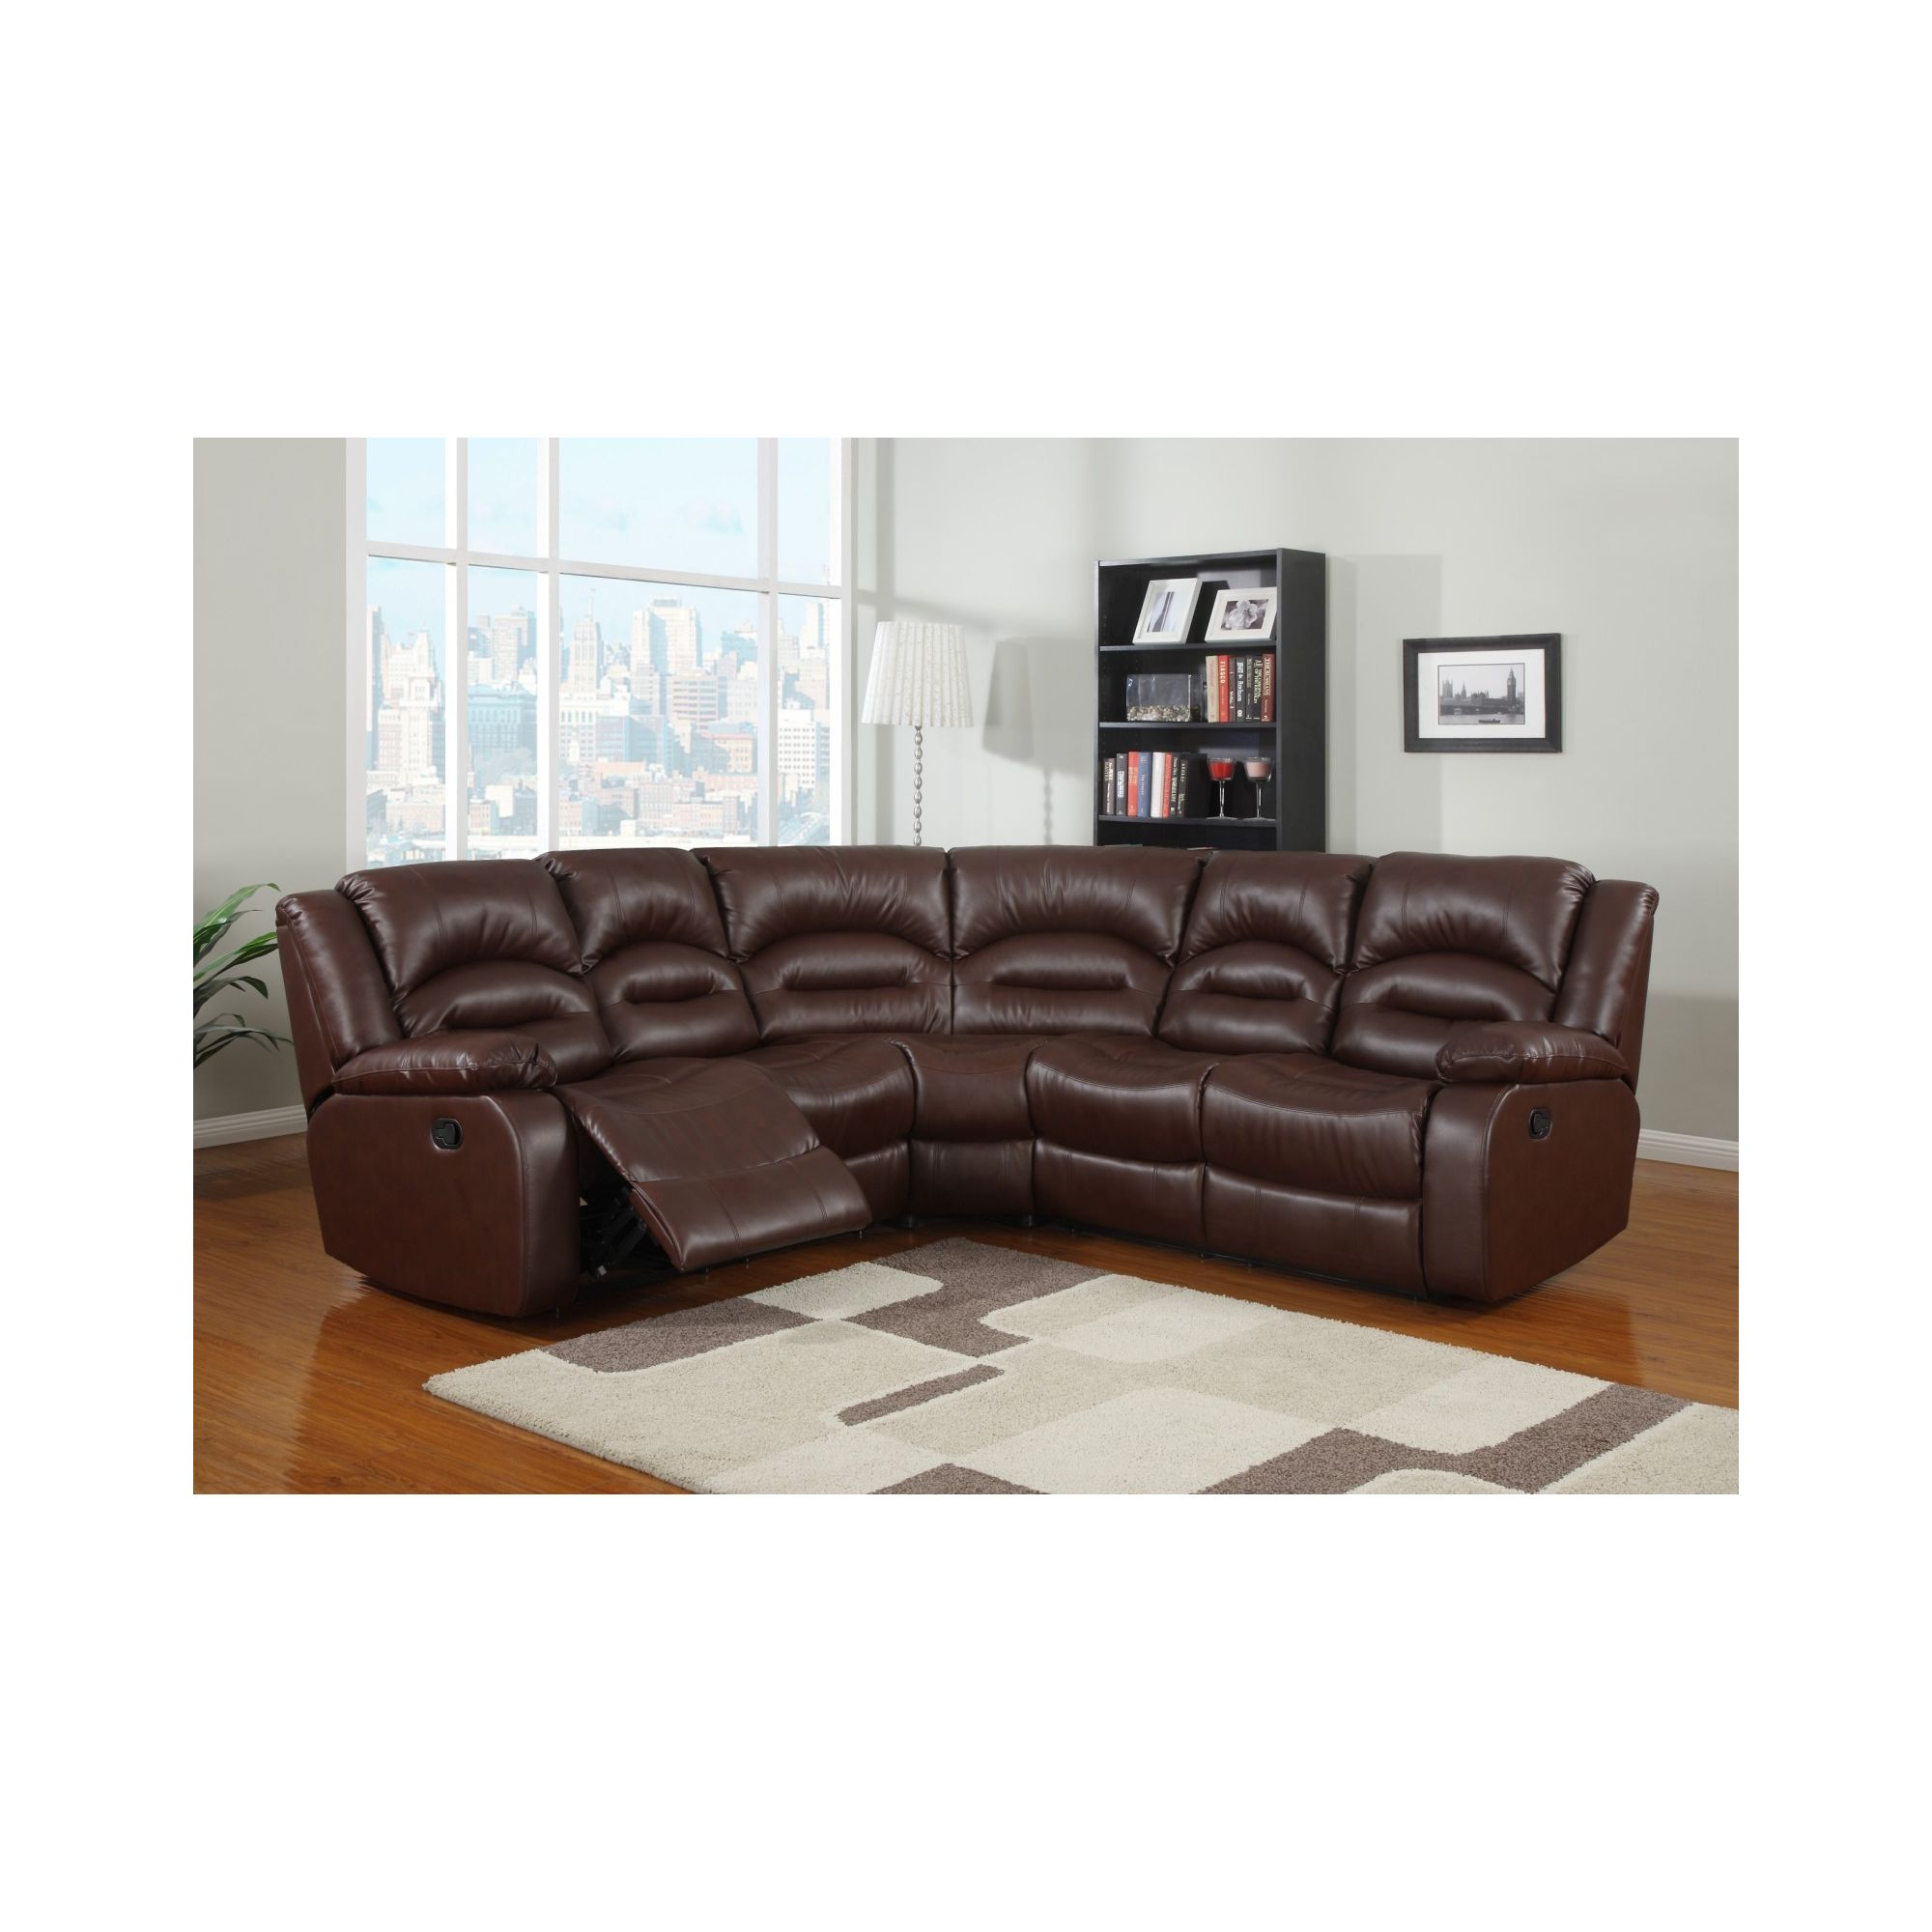 Leather Sofas | Corner Sofas | Sofa Beds | Chesterfield Sofas